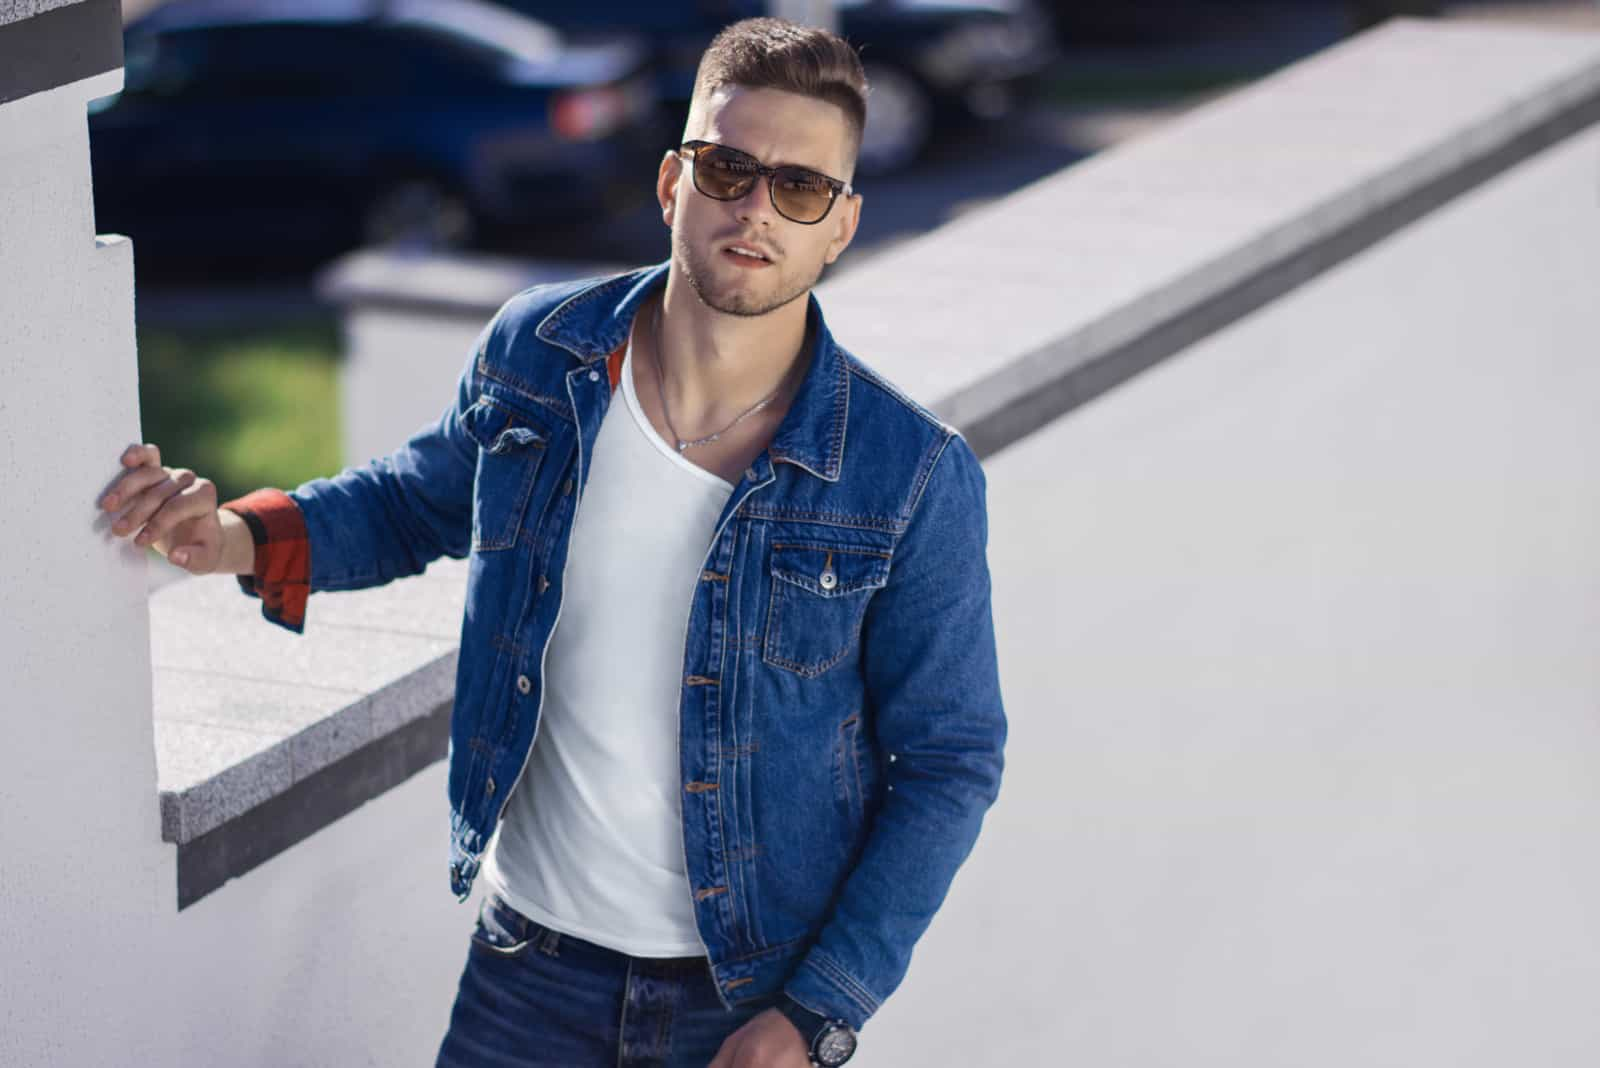 young handsome man outdoors wearing sunglasses